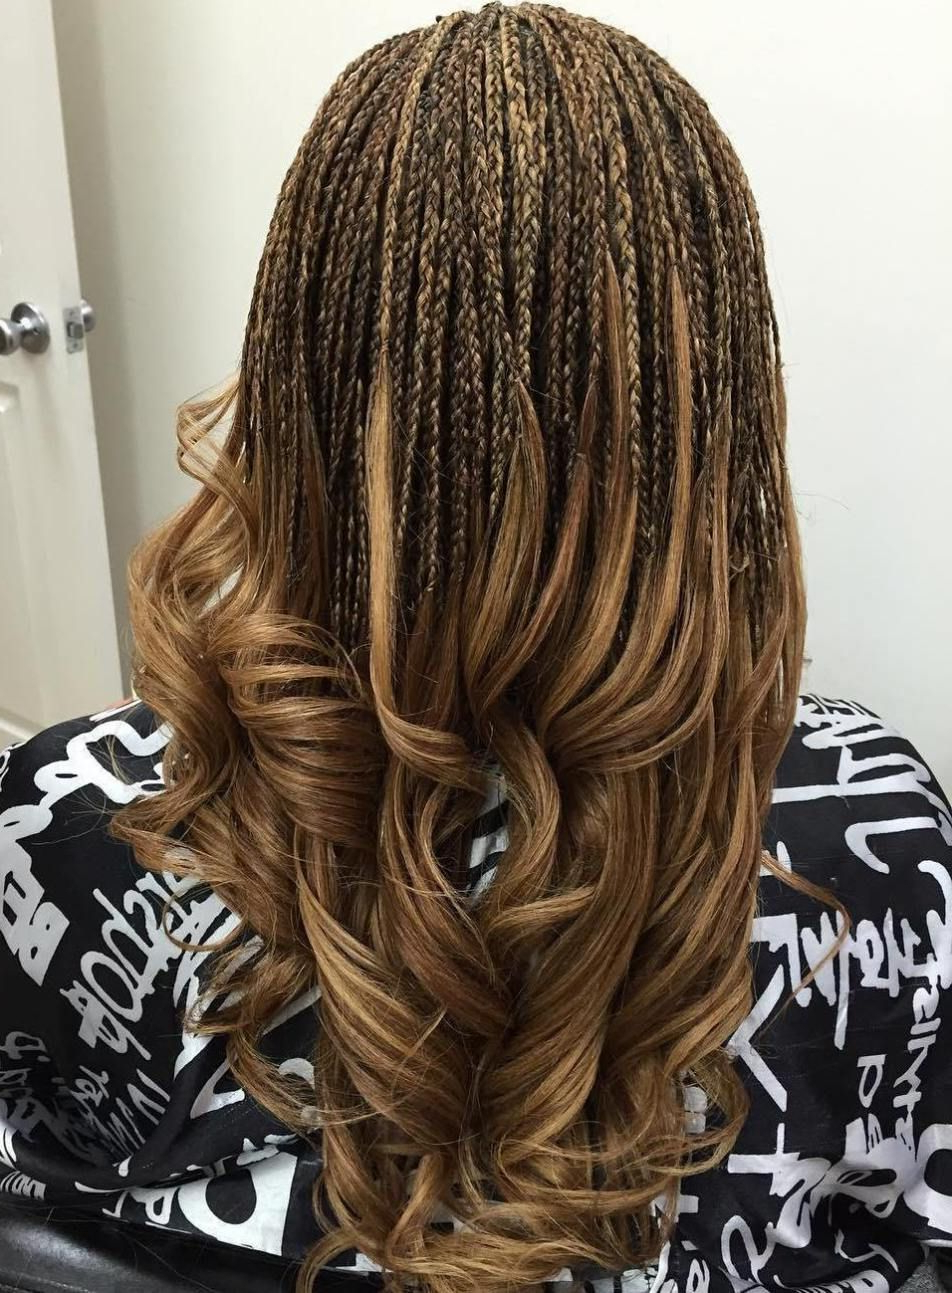 Most Recently Released Zebra Twists Micro Braid Hairstyles Pertaining To 40 Ideas Of Micro Braids And Invisible Braids Hairstyles (View 13 of 20)